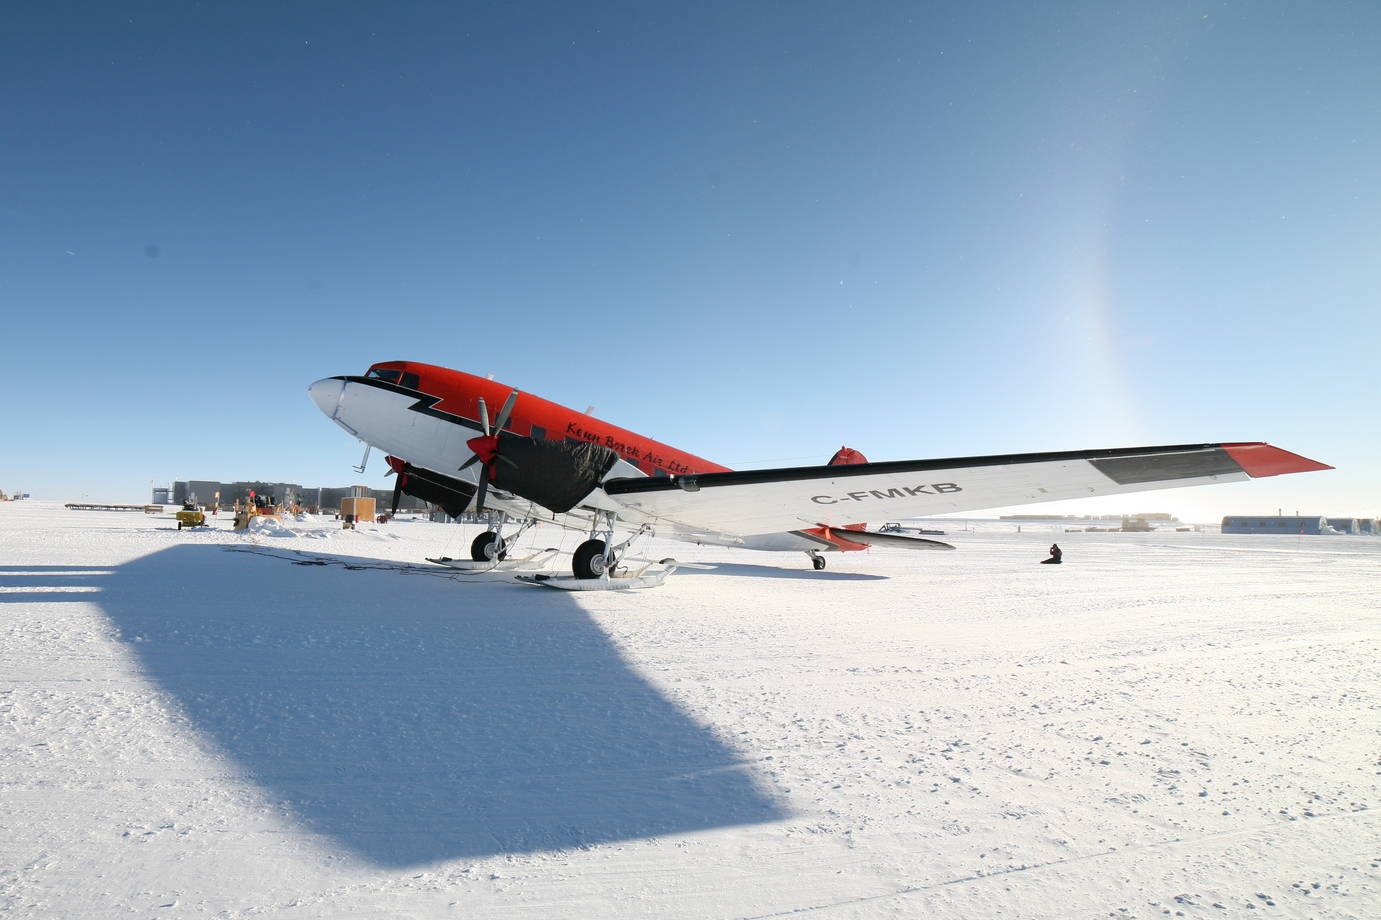 A Basler aircraft parked in front of the south pole station.